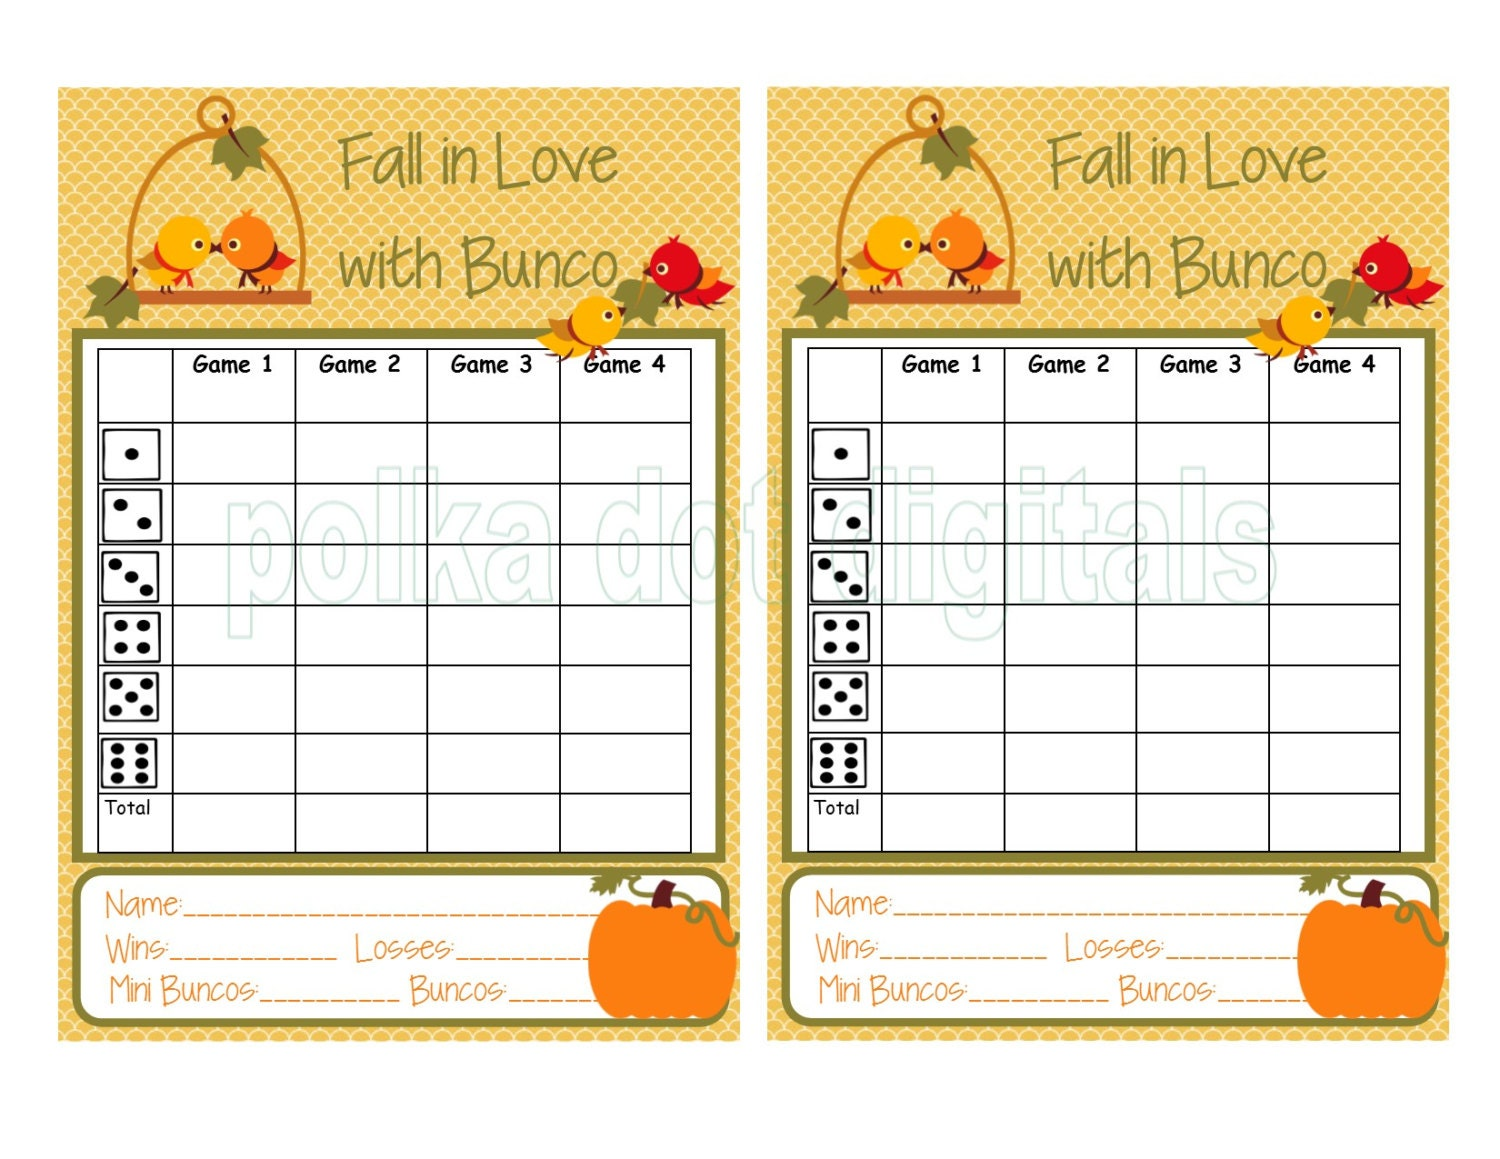 Buy 1 Get Free Complete Set FALL In LOVE With Bunco Score